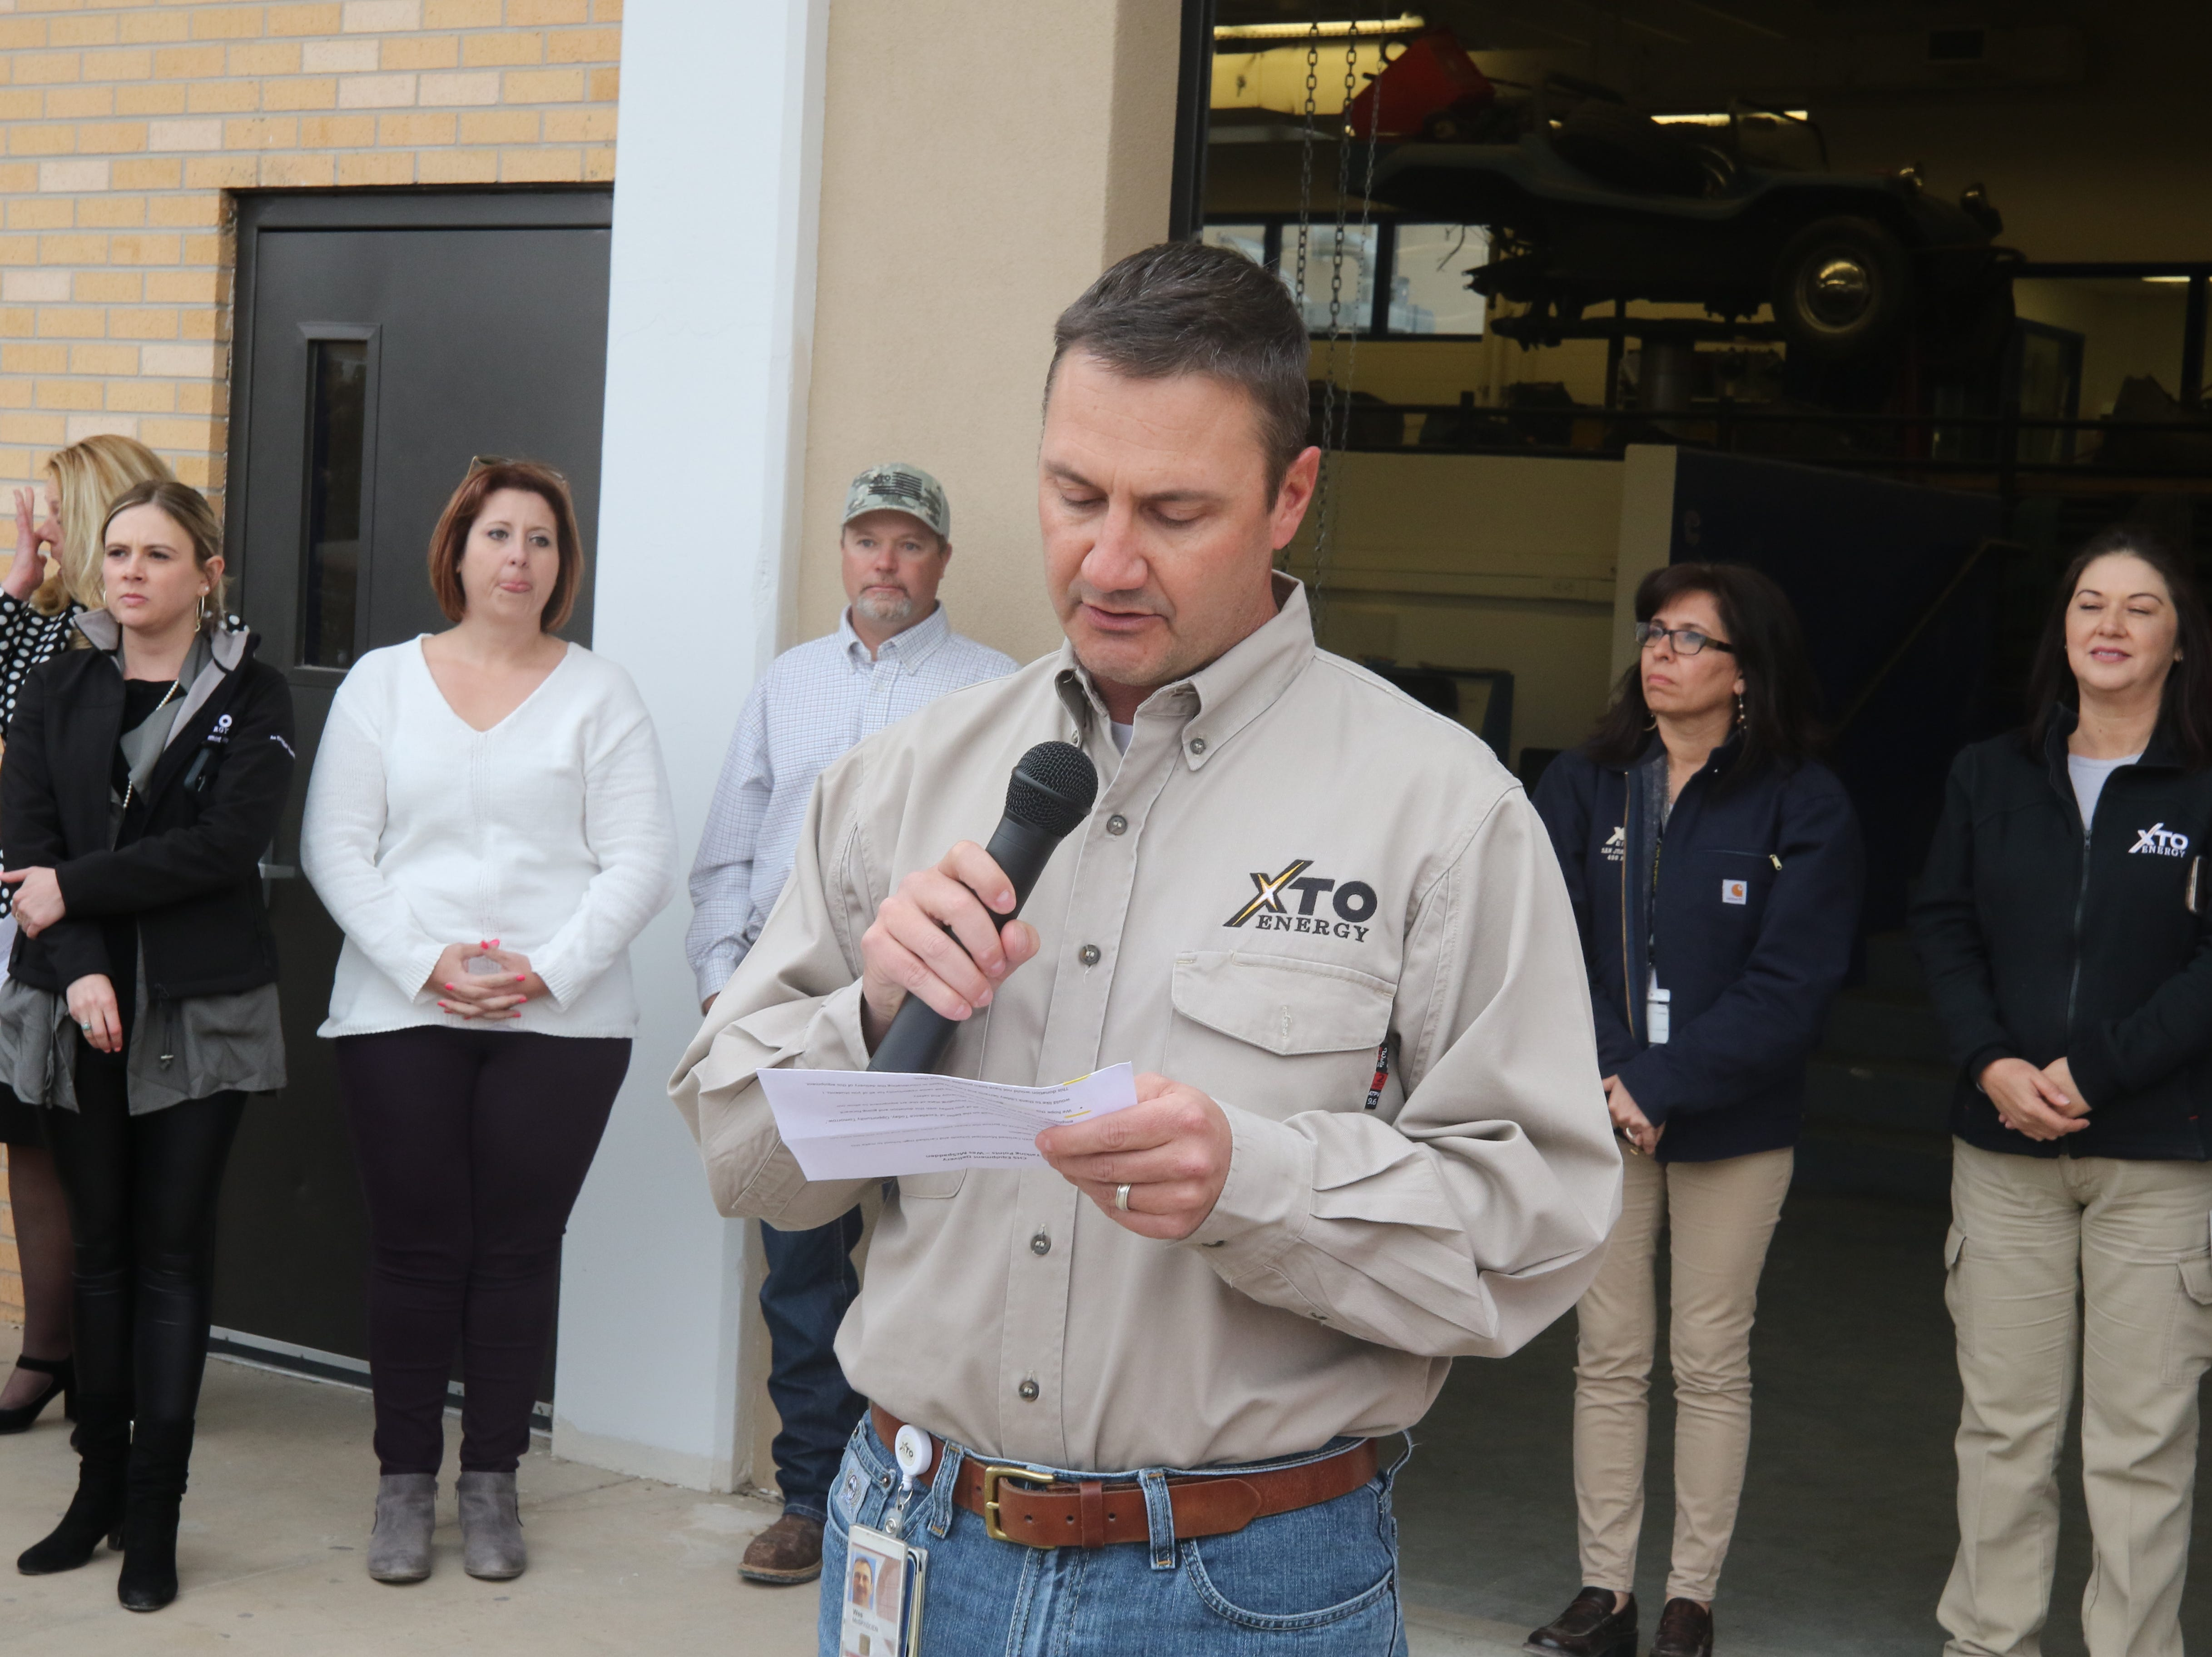 Wes McSpadden, superintendent of XTO Energy's Carlsbad office discusses the company's donation to Carlsbad Municipal Schools, March 11, 2019 at Carlsbad High School.